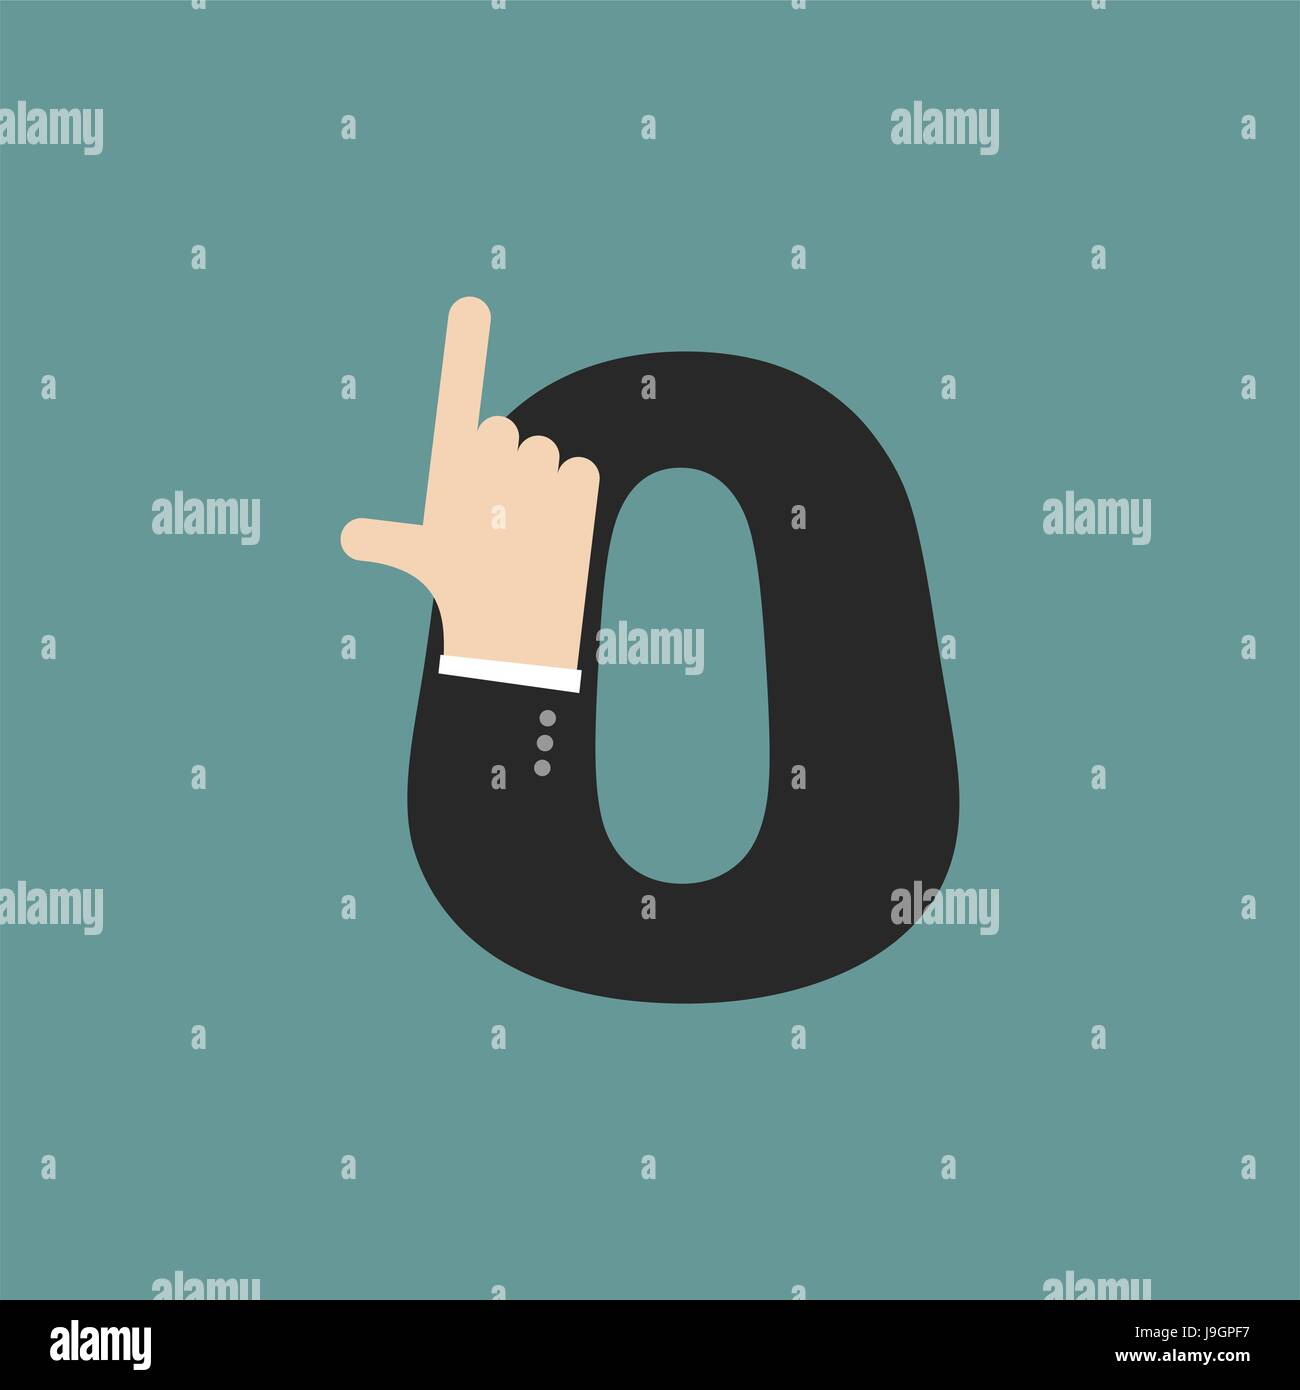 number 0 letter businessman hand font. It shows finger print. Arm symbol zero alphabet. Sign of ABC - Stock Vector